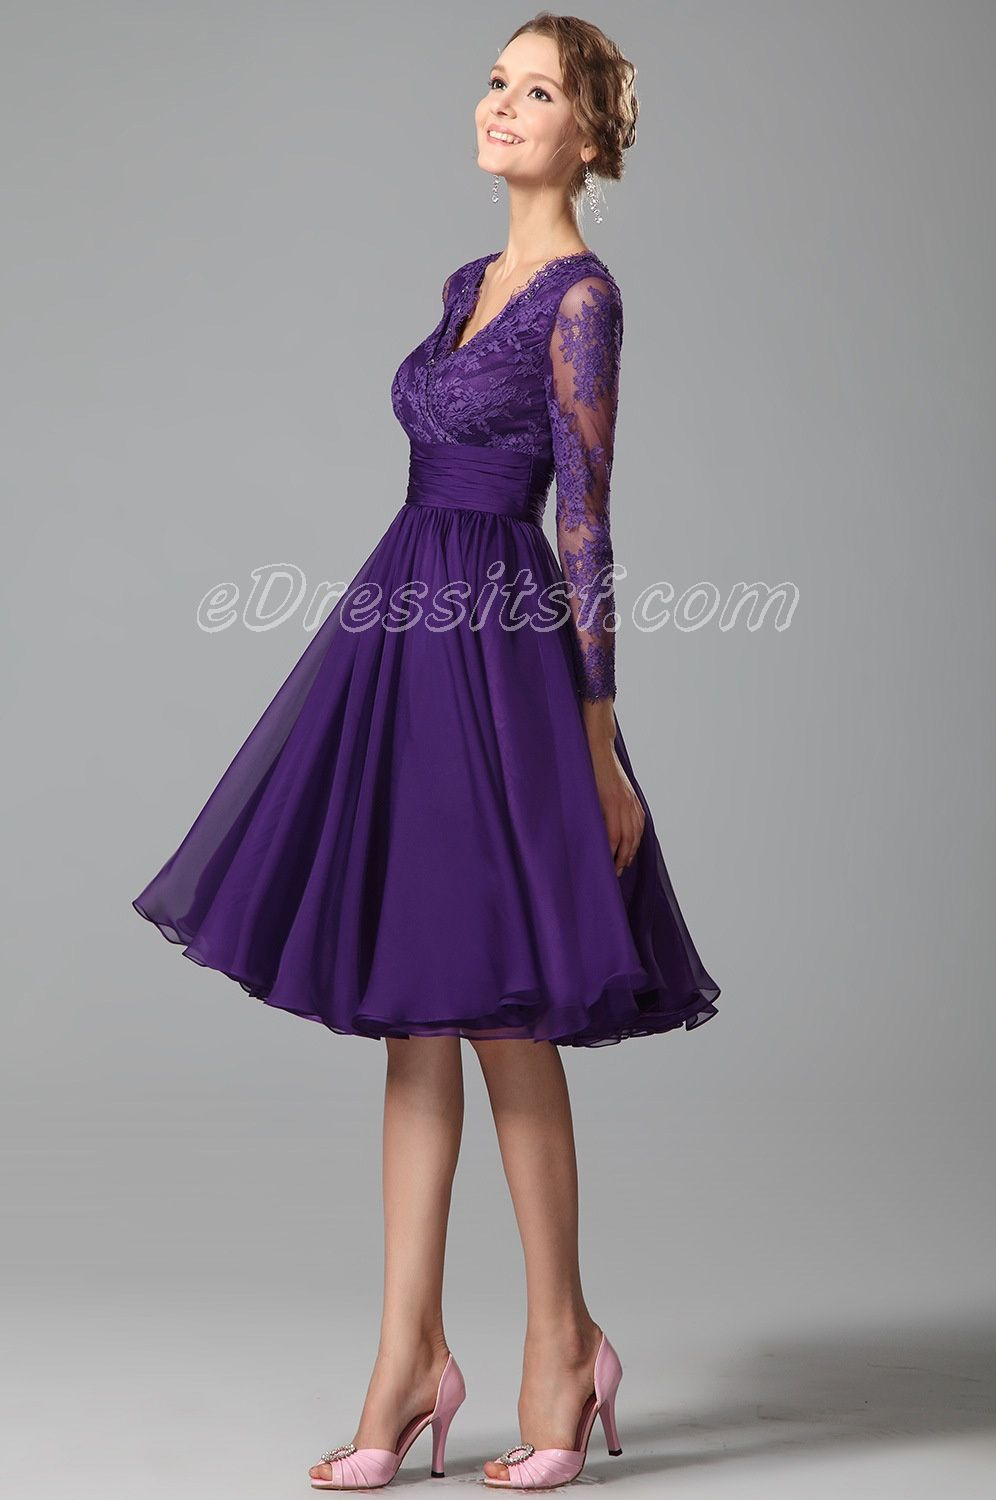 New Purple Cocktail Dress Party Dress With Long Lace Sleeves ...